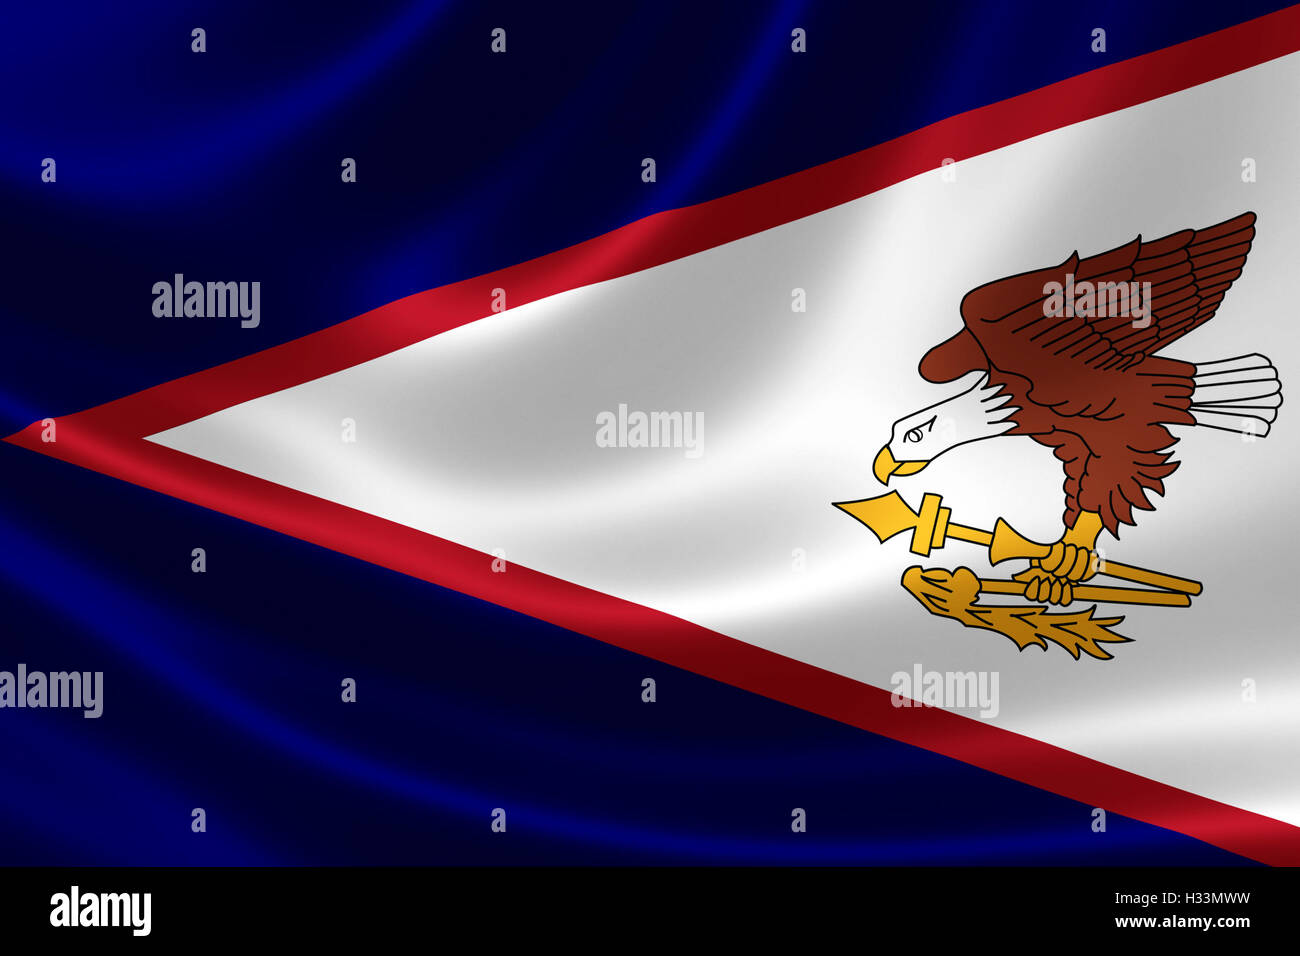 3D rendering of a satin-textured flag of American Samoa, an unincorporated United States territory located in the Stock Photo